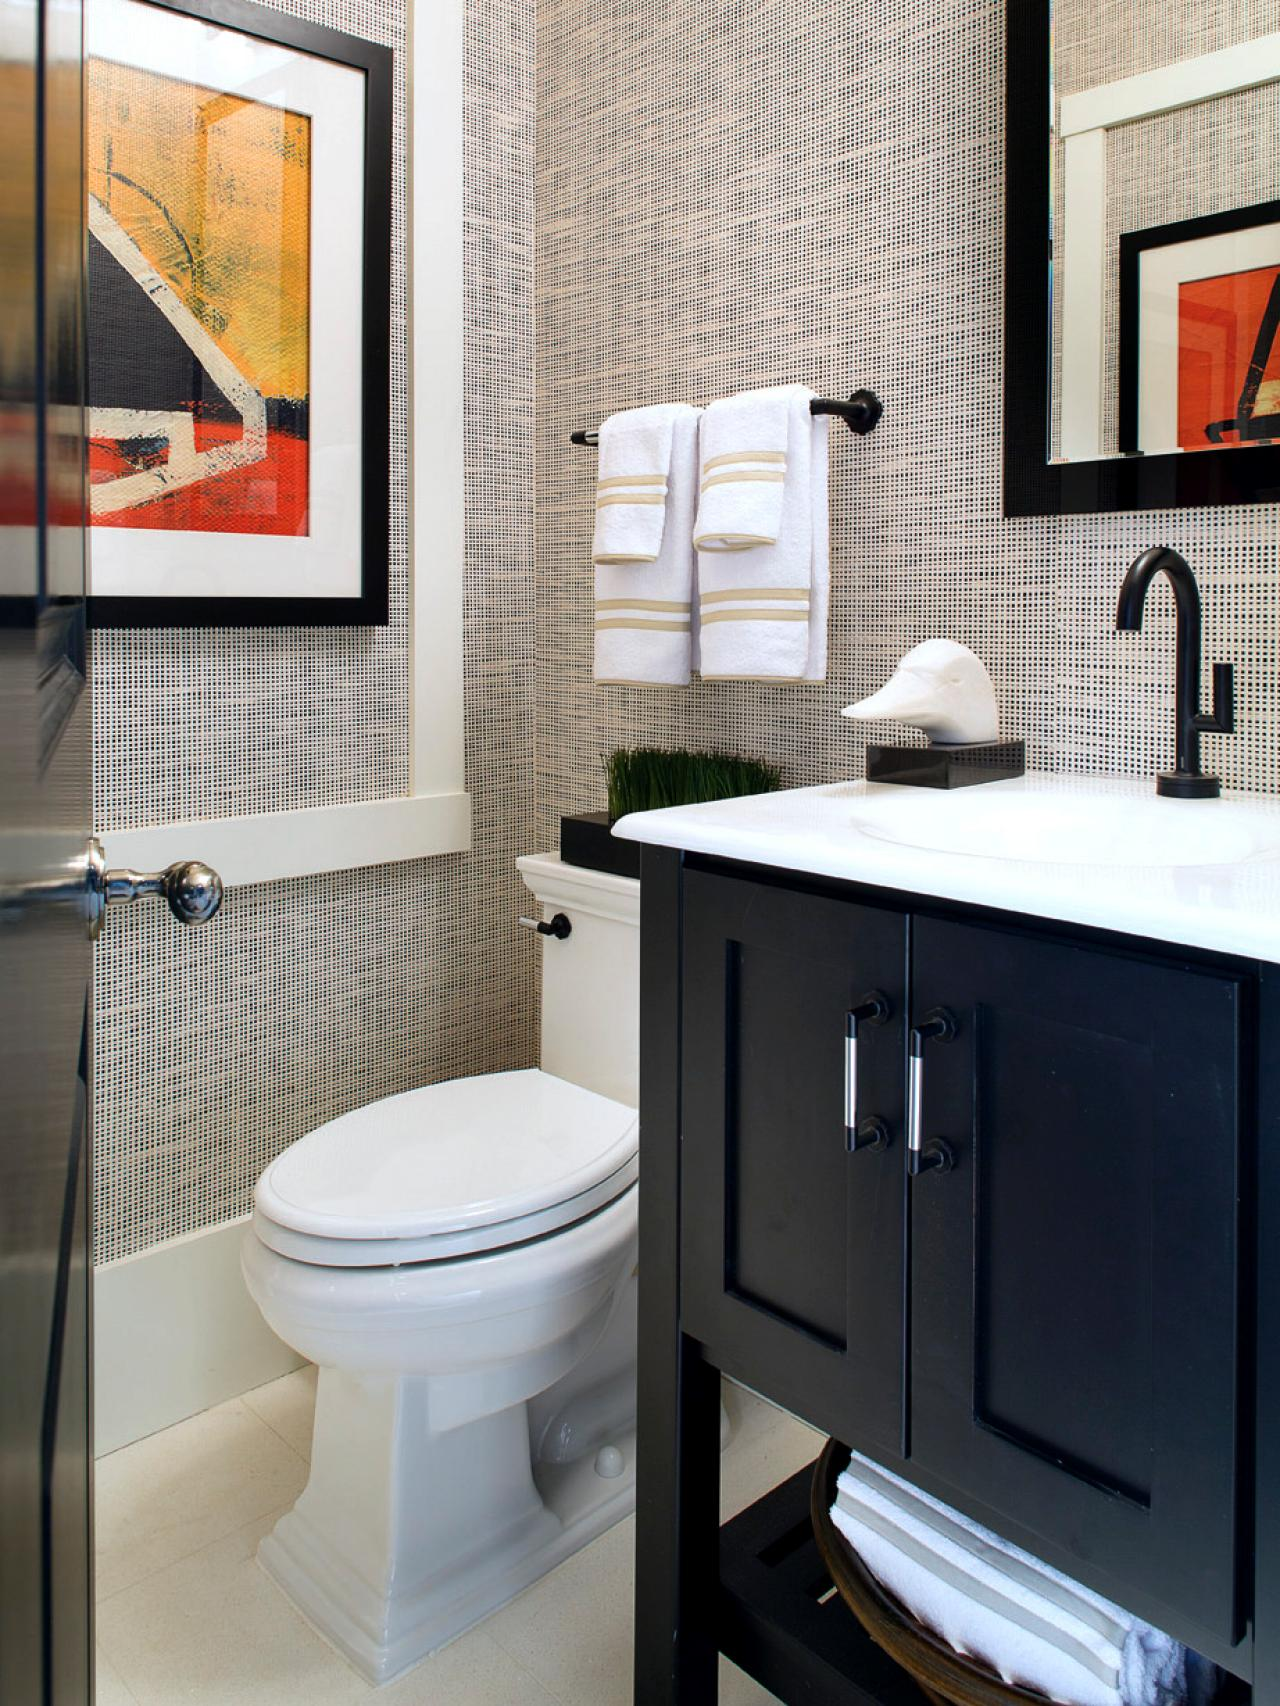 37+] Images of Wallpapered Bathrooms on WallpaperSafari on